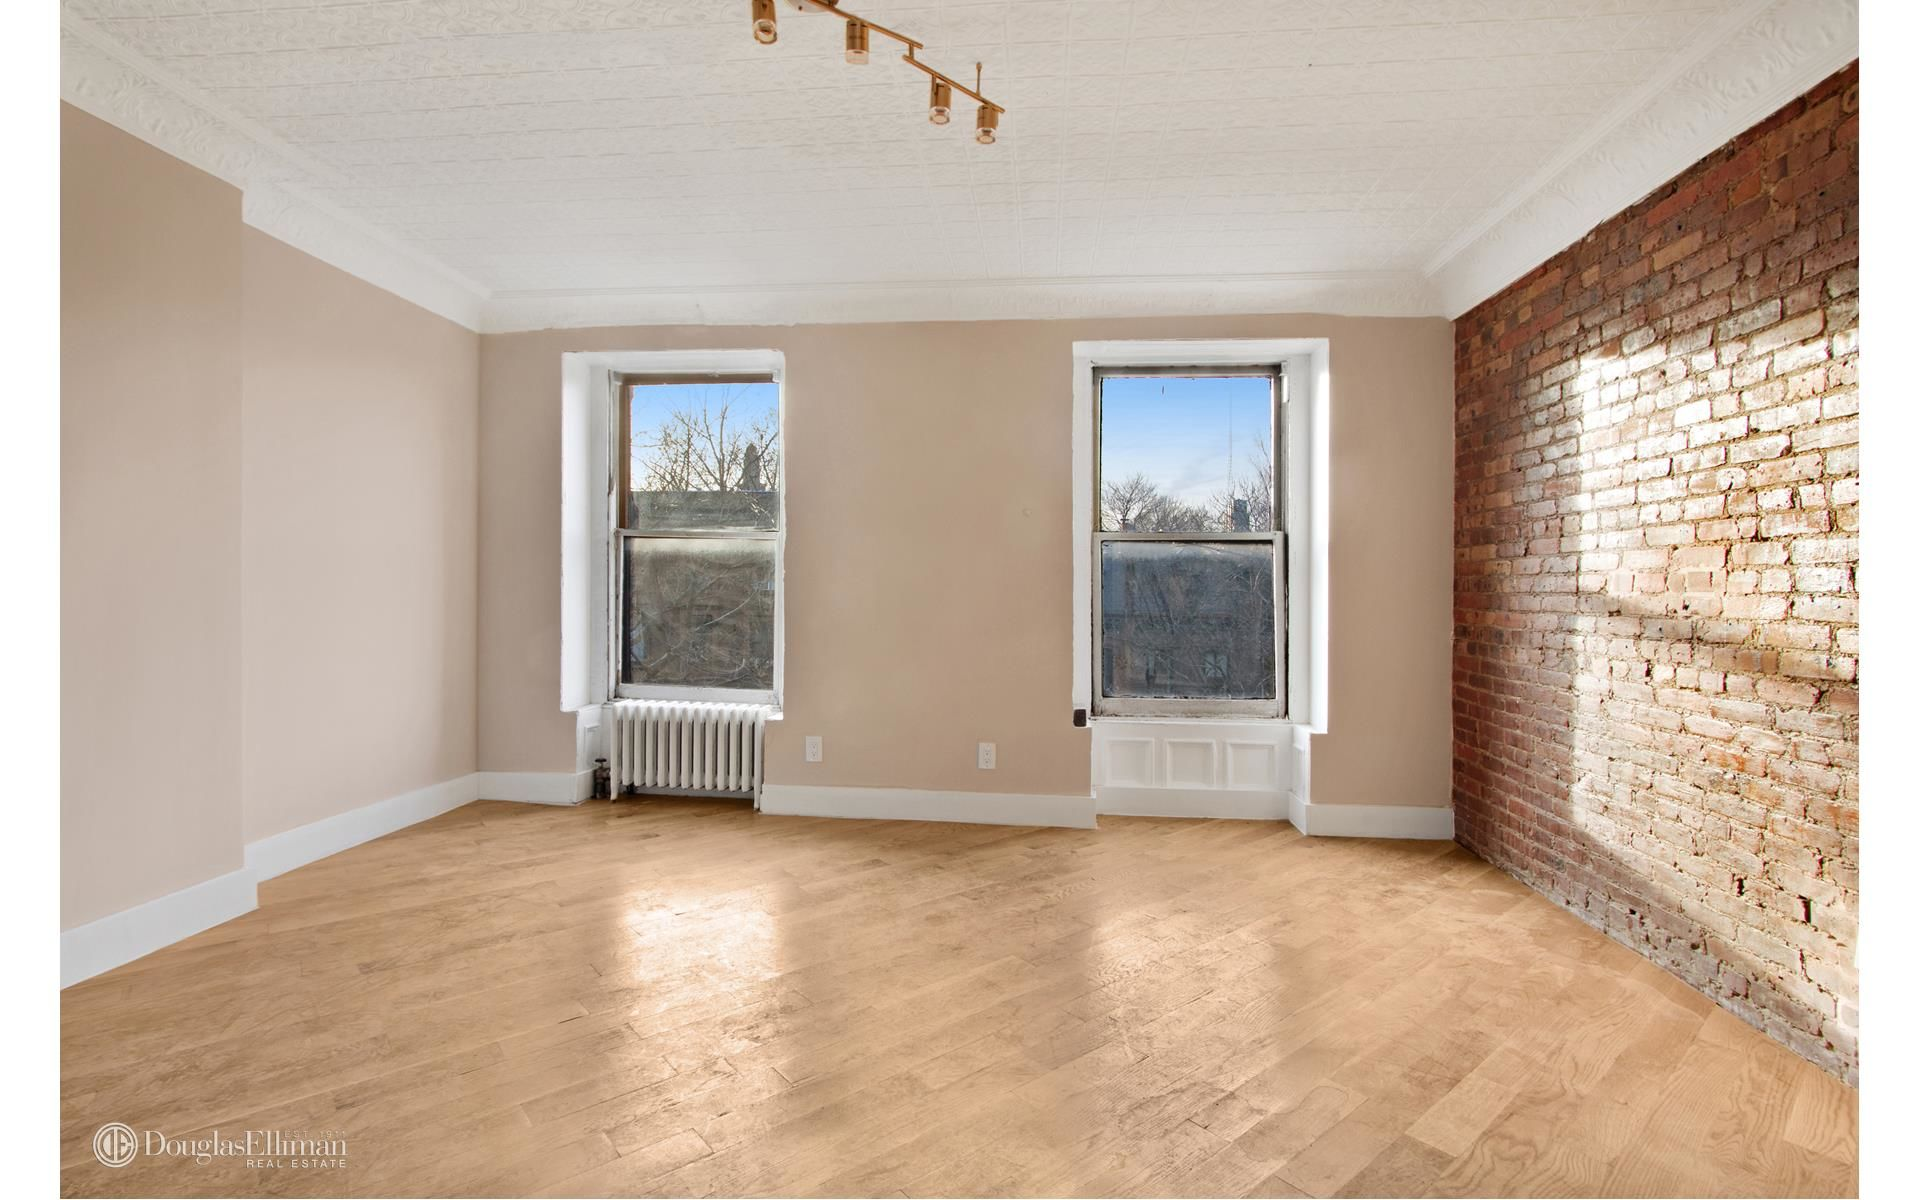 299 Vanderbilt Ave Photo 7 - ELLIMAN-2558258